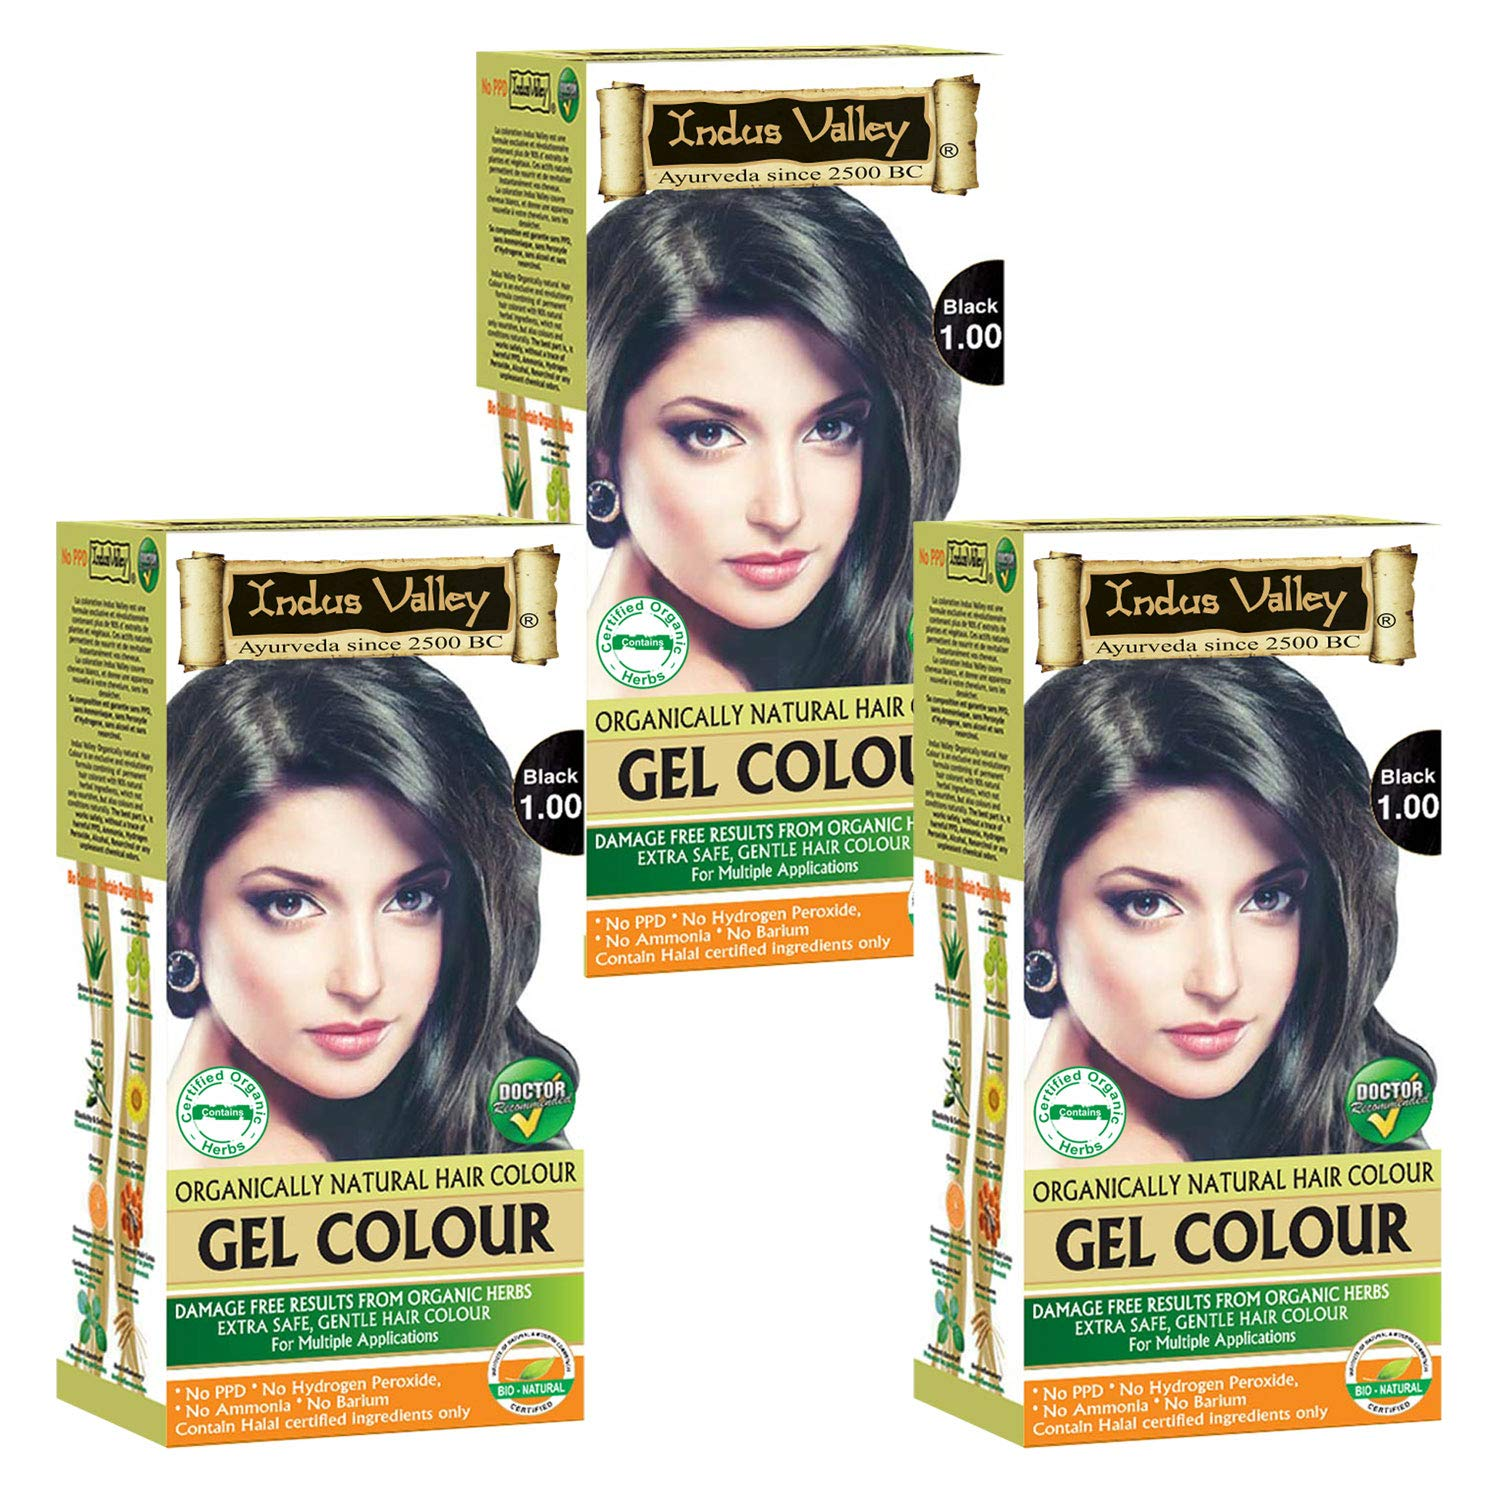 Indus Valley Ppd Free Ammonia Free No Hydrogen Peroxide Black 1 0 Hair Color Set Of 3